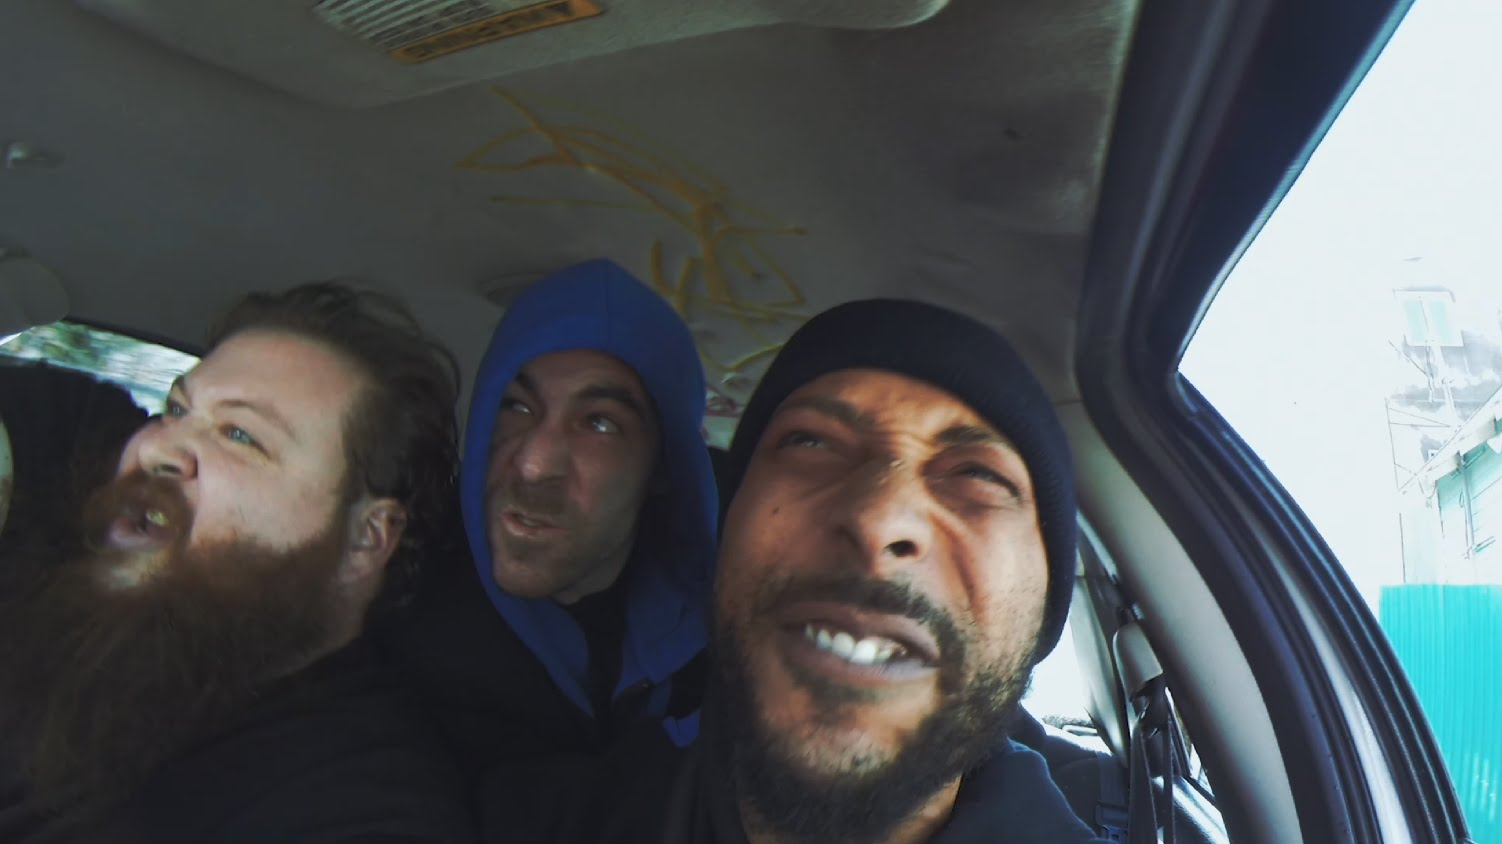 The Alchemist & Oh No Ft Action Bronson – Driving Gloves